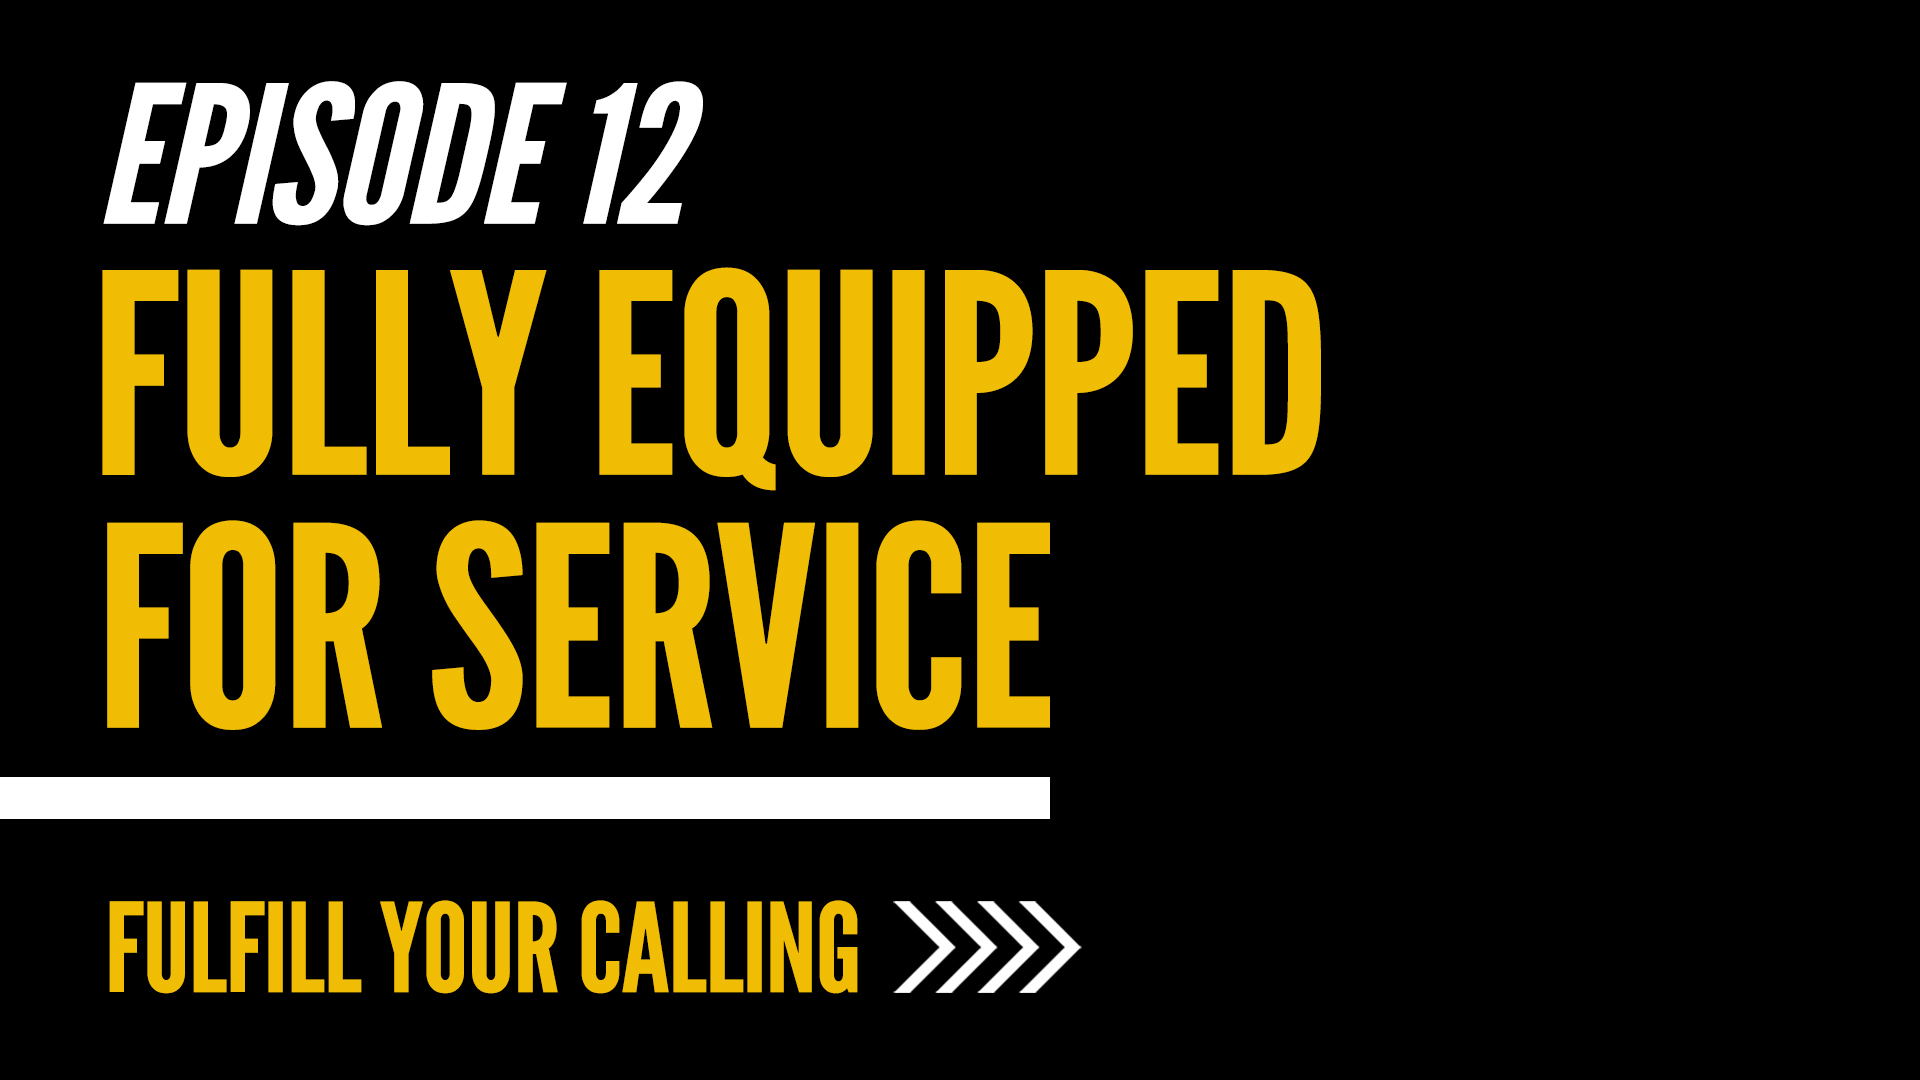 How to Fulfill Your Calling - Episode 12 with David Steele